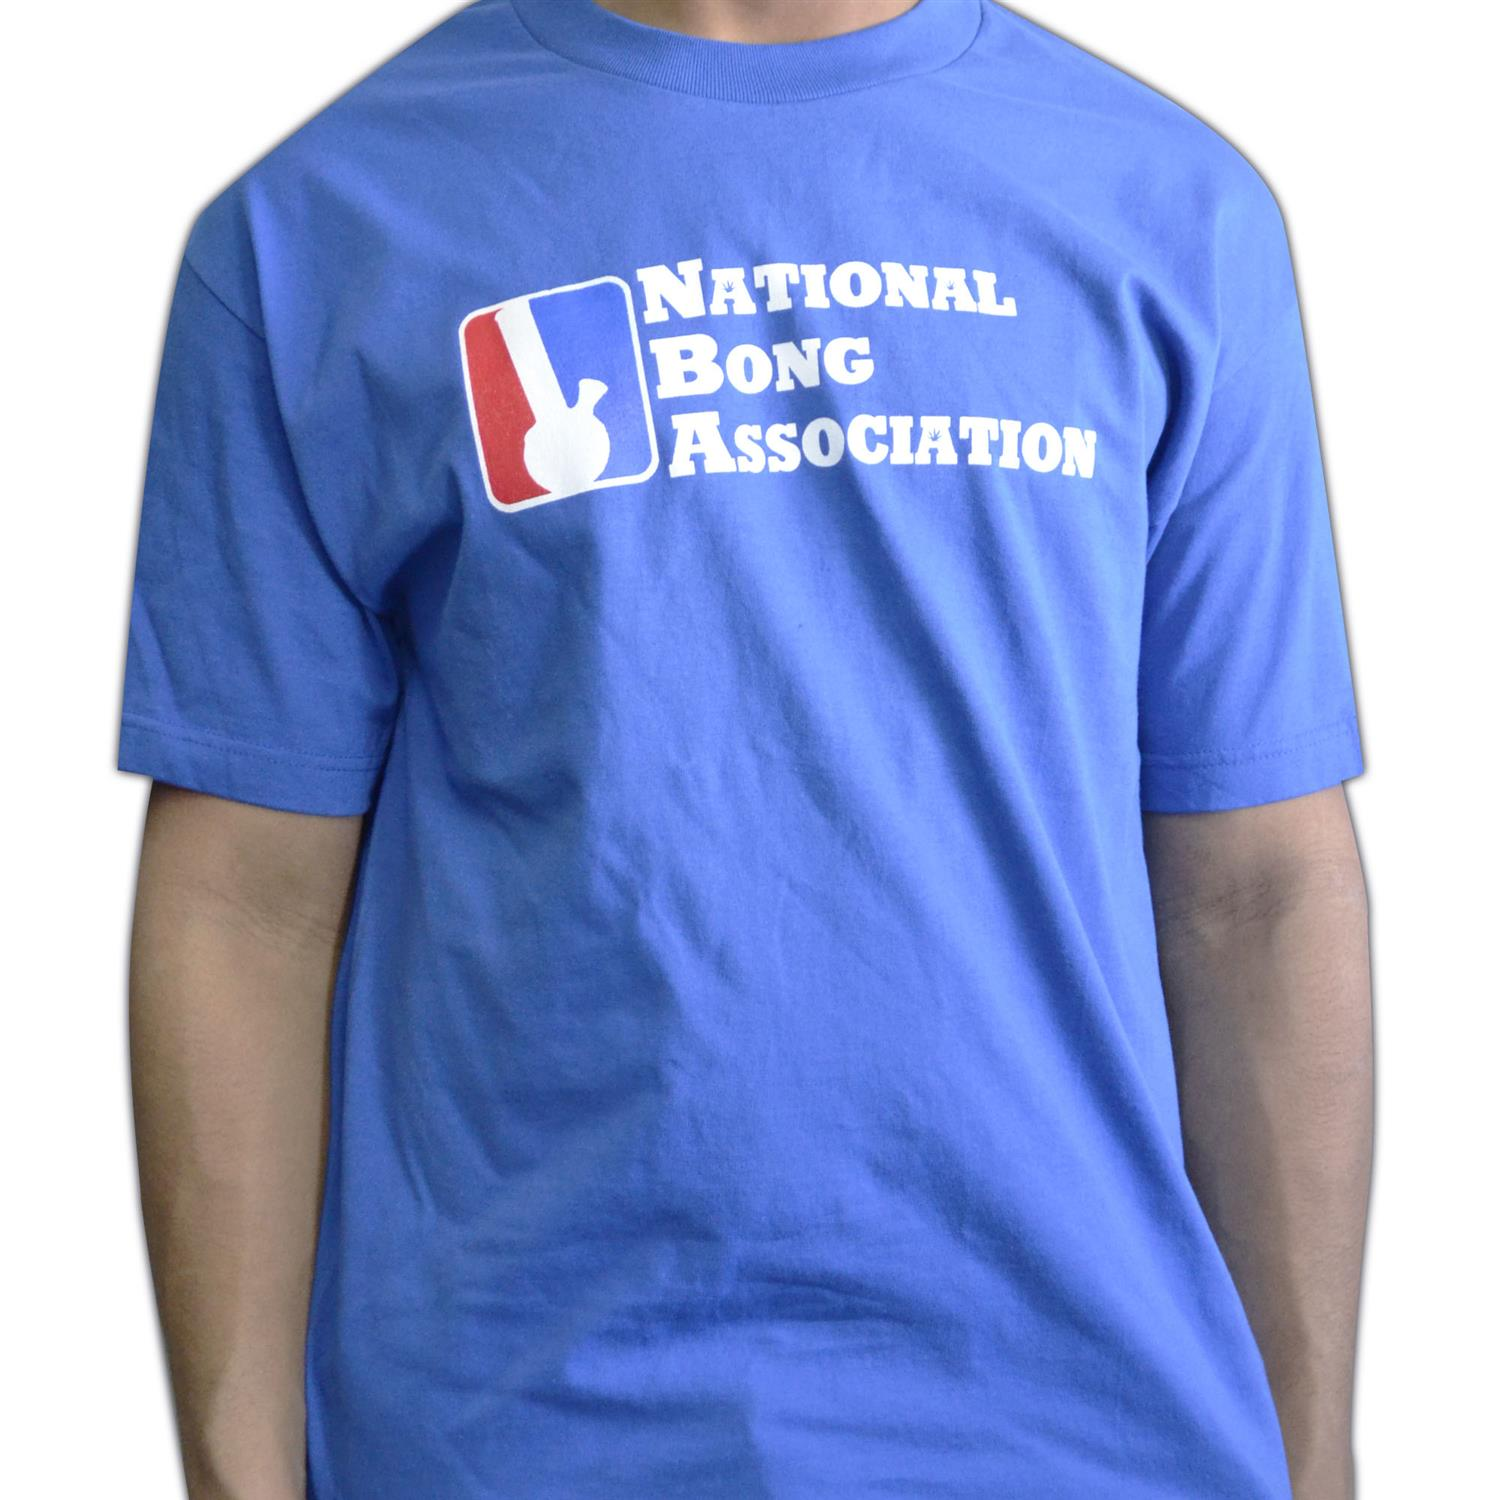 National Bong Association